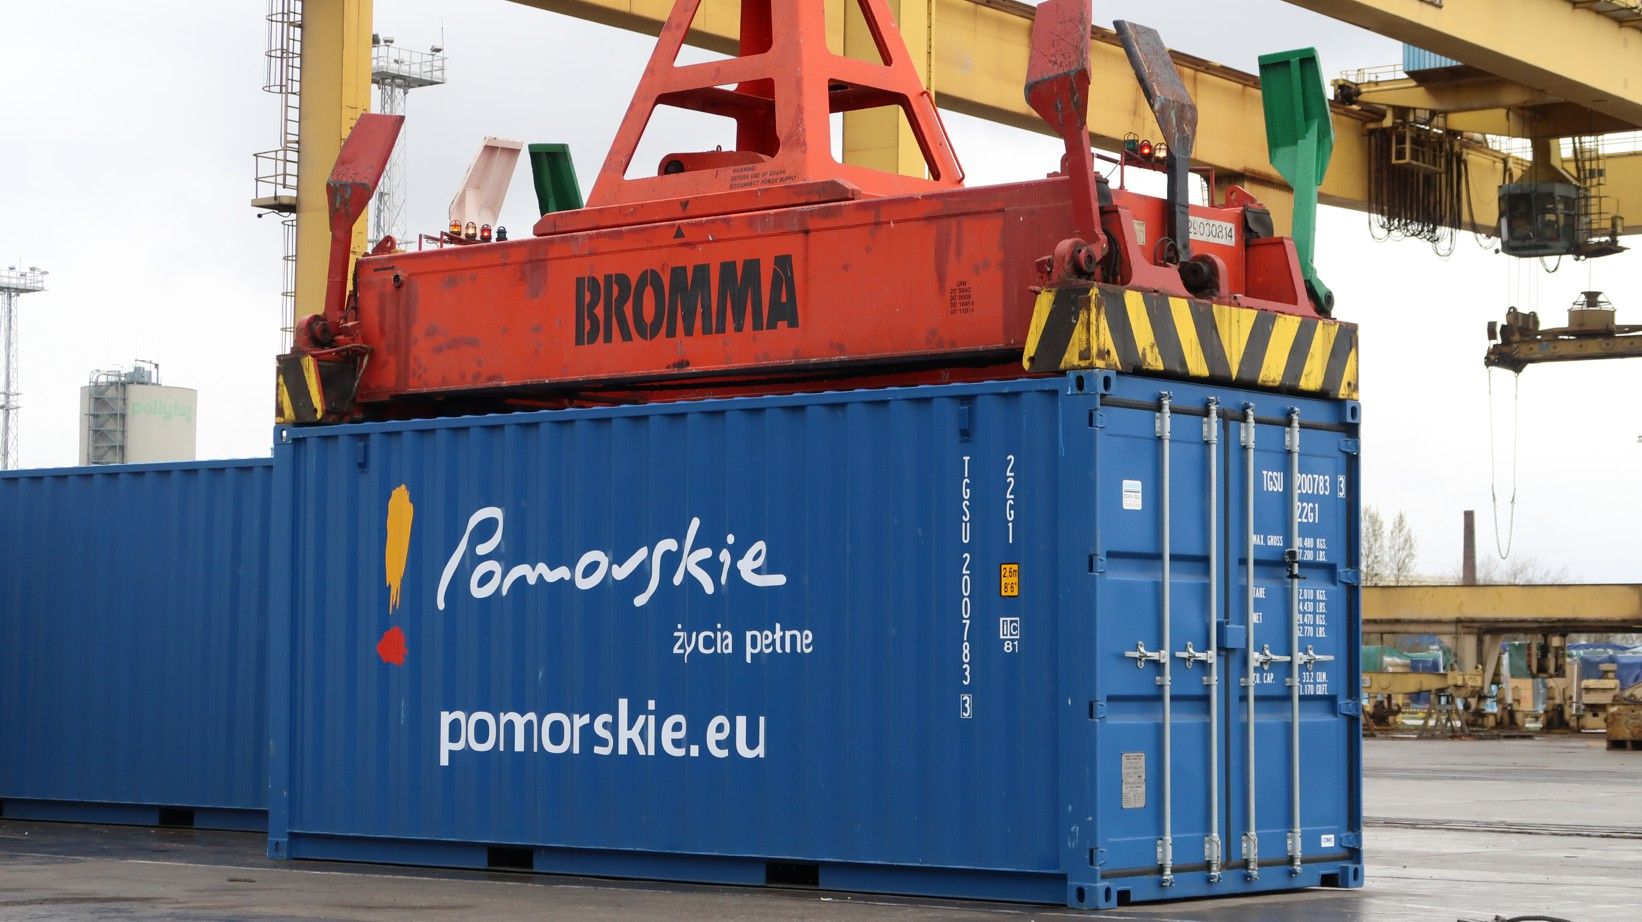 CONTAINERS WILL SHIP UP THE VISTULA. AS A TEST, FOR NOW